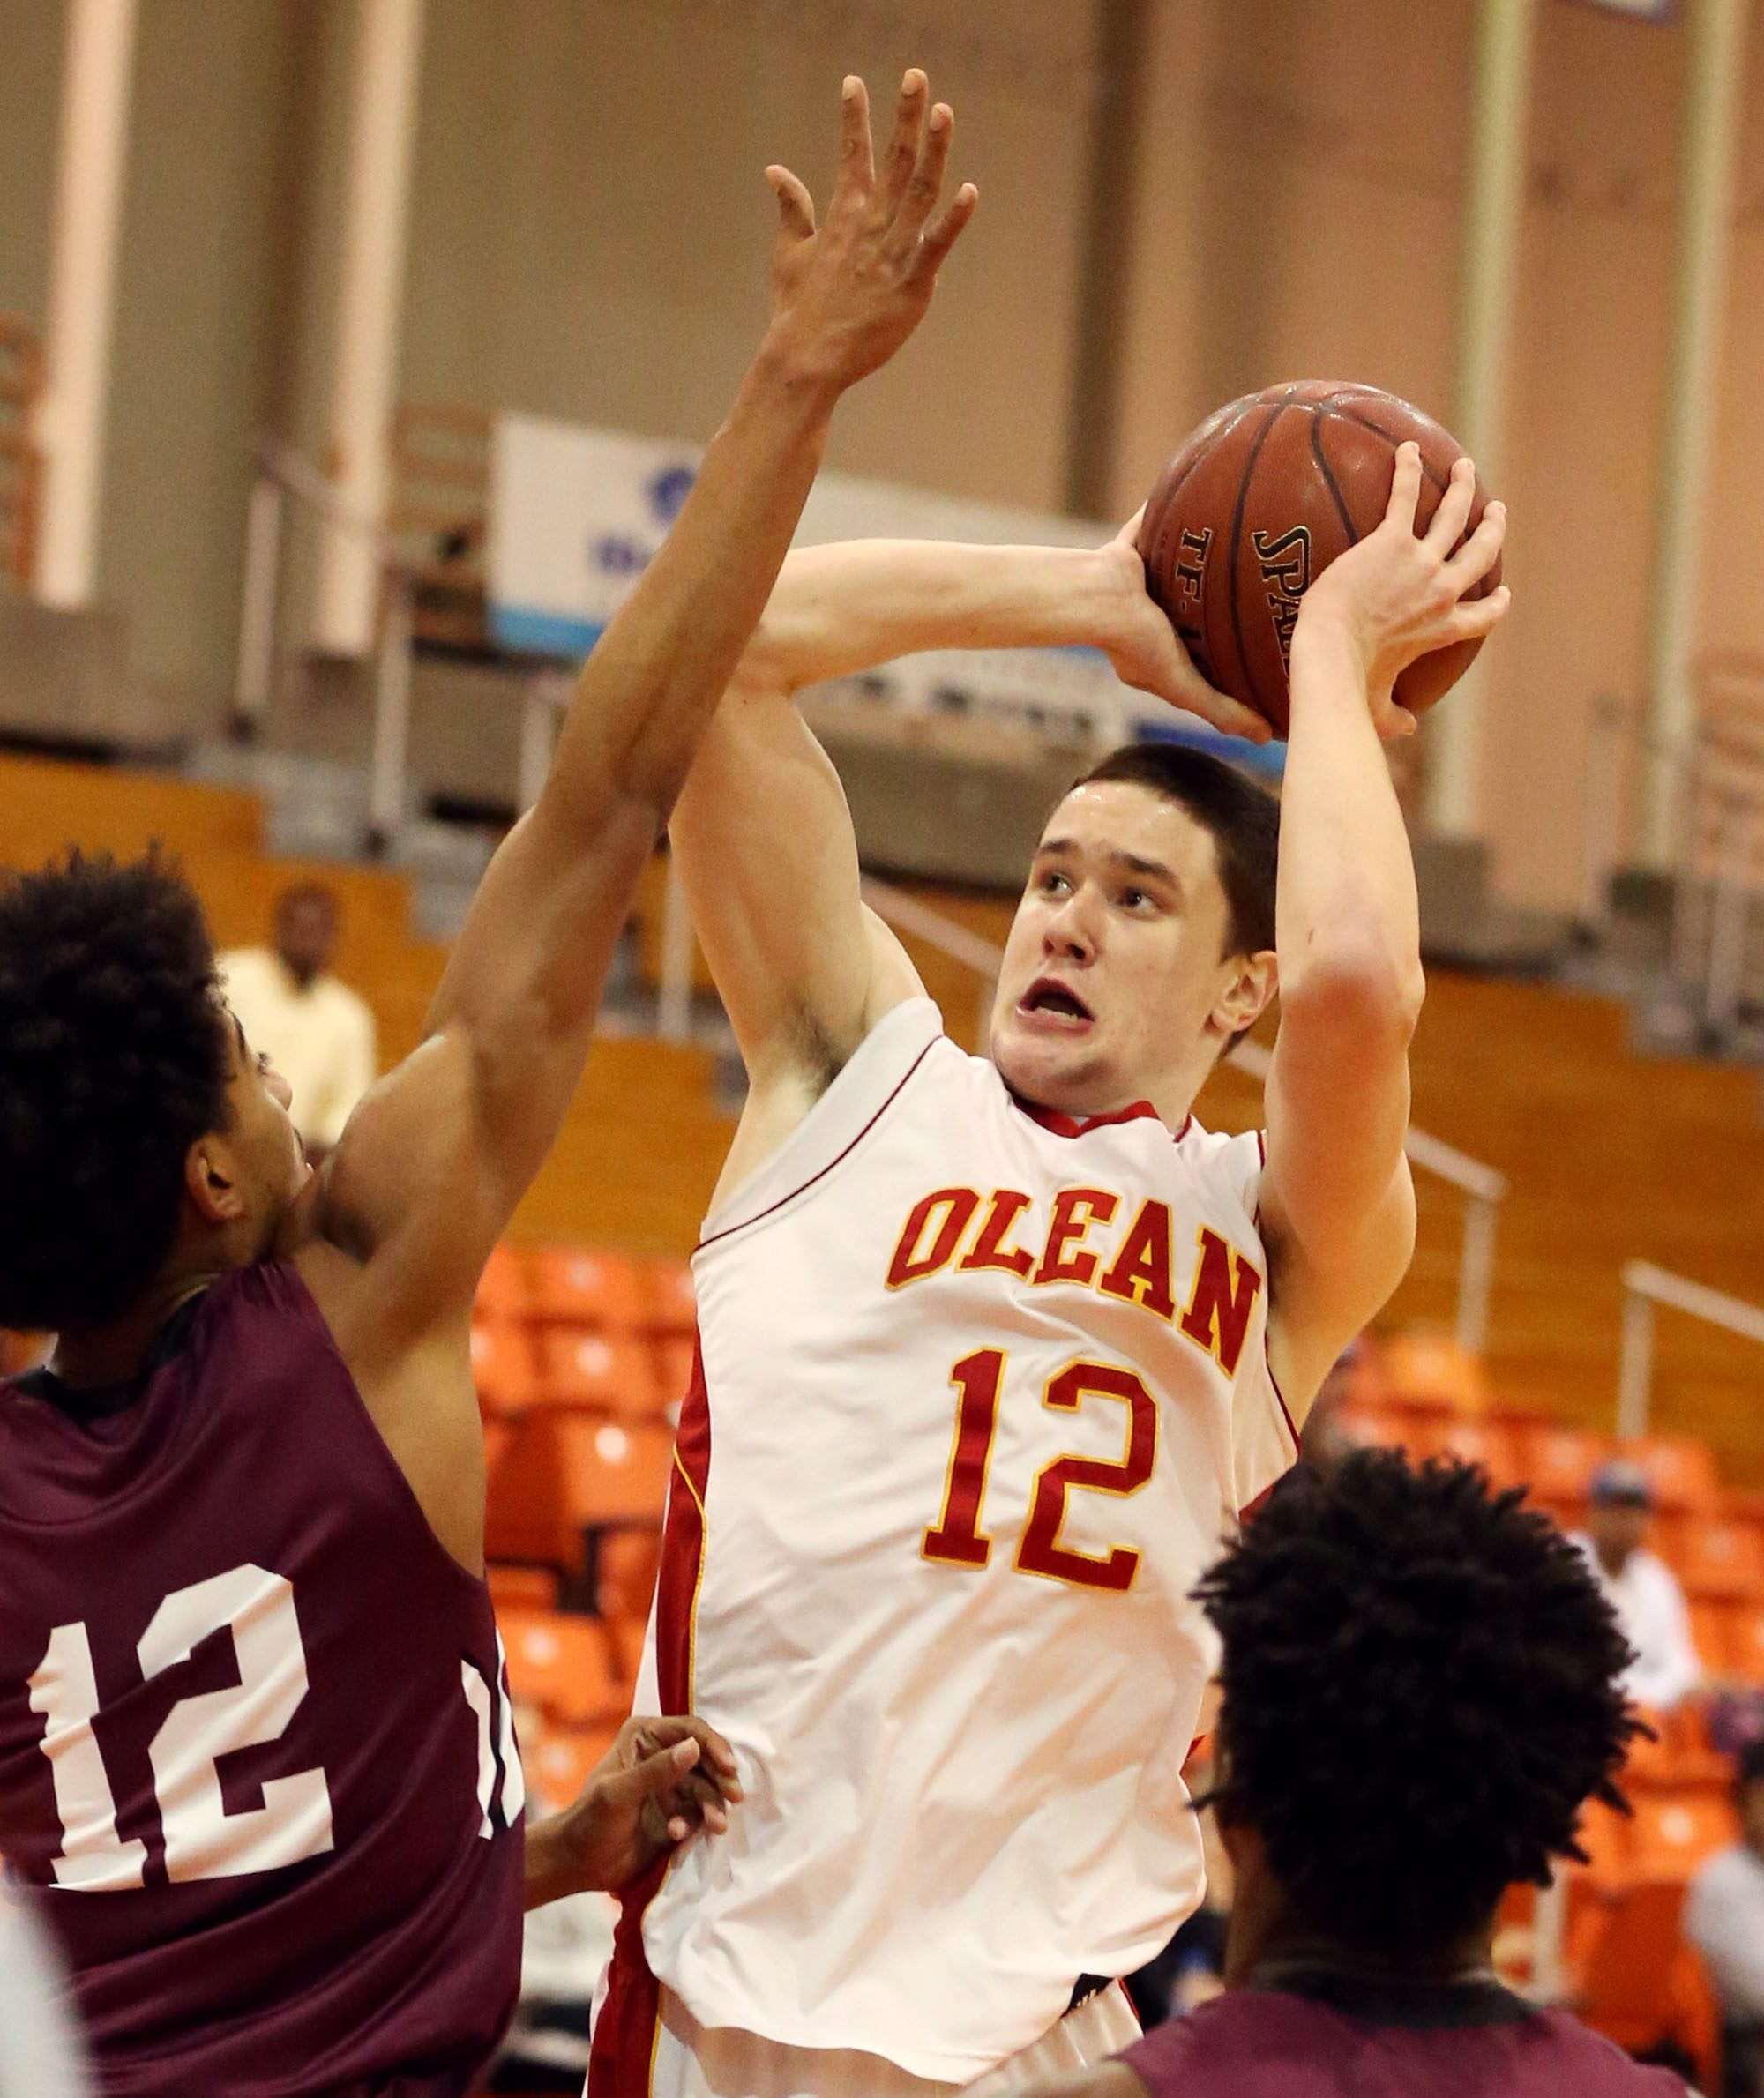 Olean's Ben Eckstrom led the top-seeded Huskies with 19 points in the Section VI federation B-1 semifinals at the Buffalo State Sports Arena on Thursday.